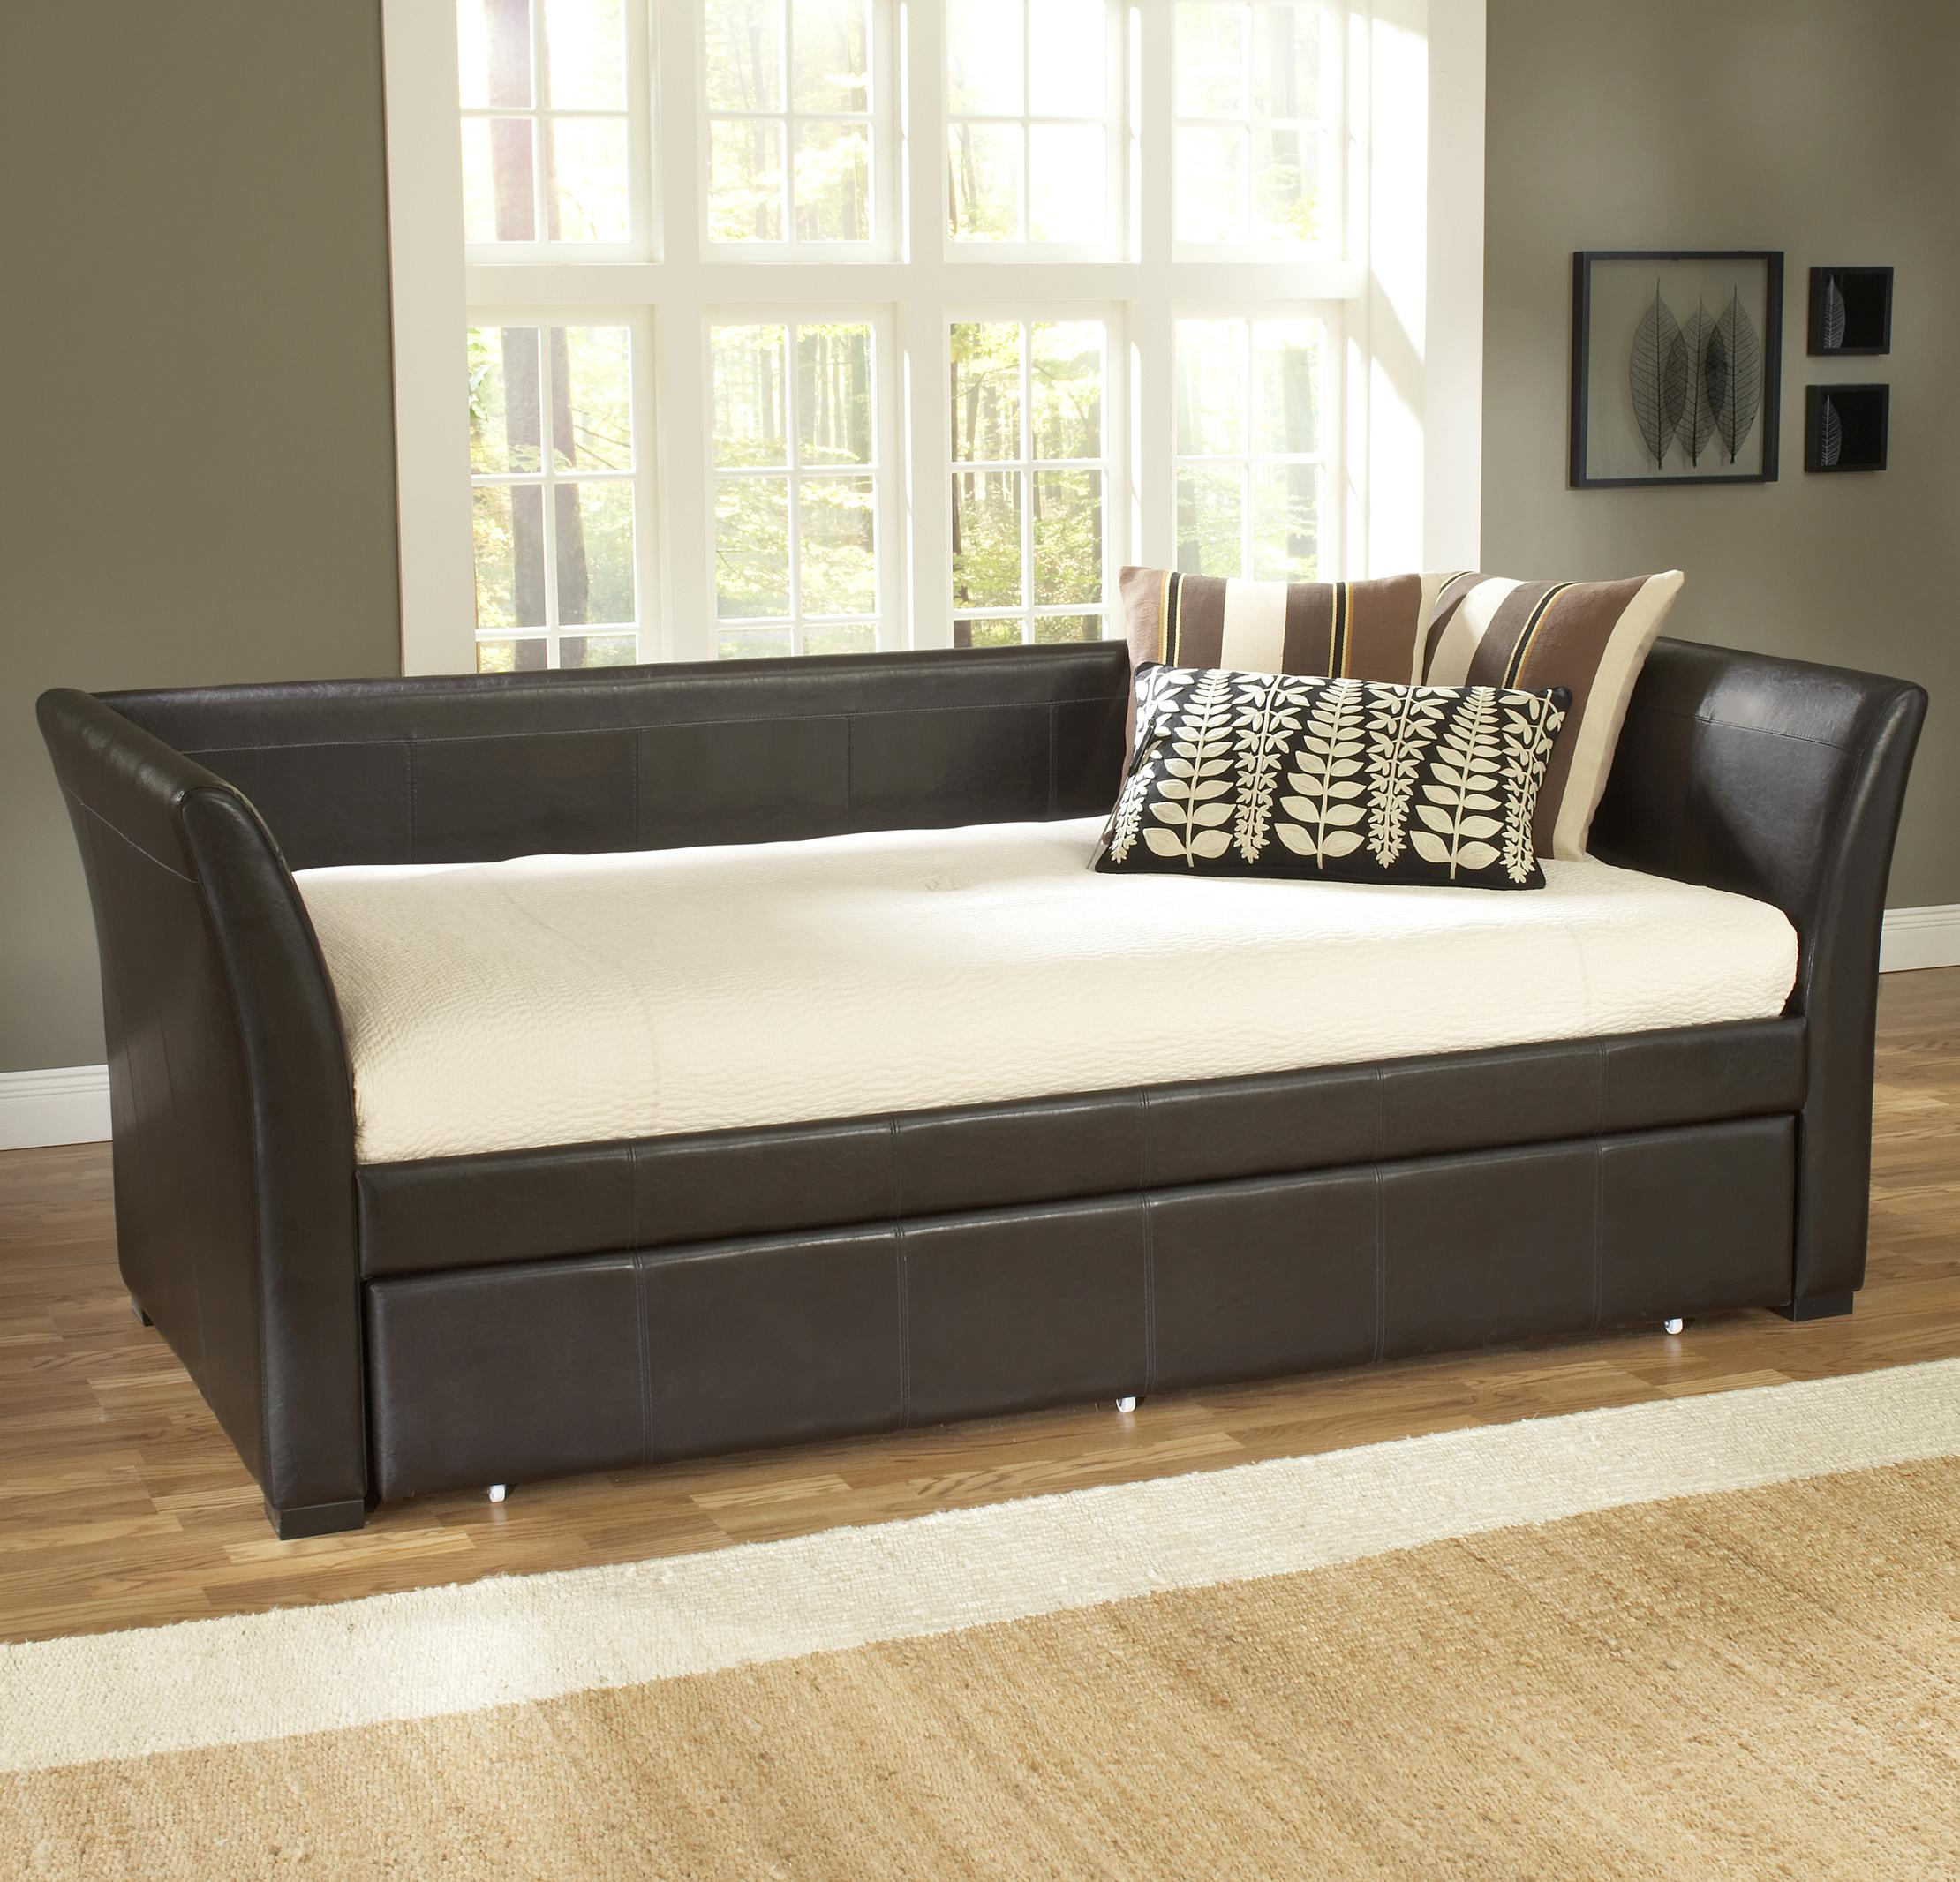 Hillsdale Daybeds Twin Malibu Daybed with Trundle - Item Number: 1519DBT